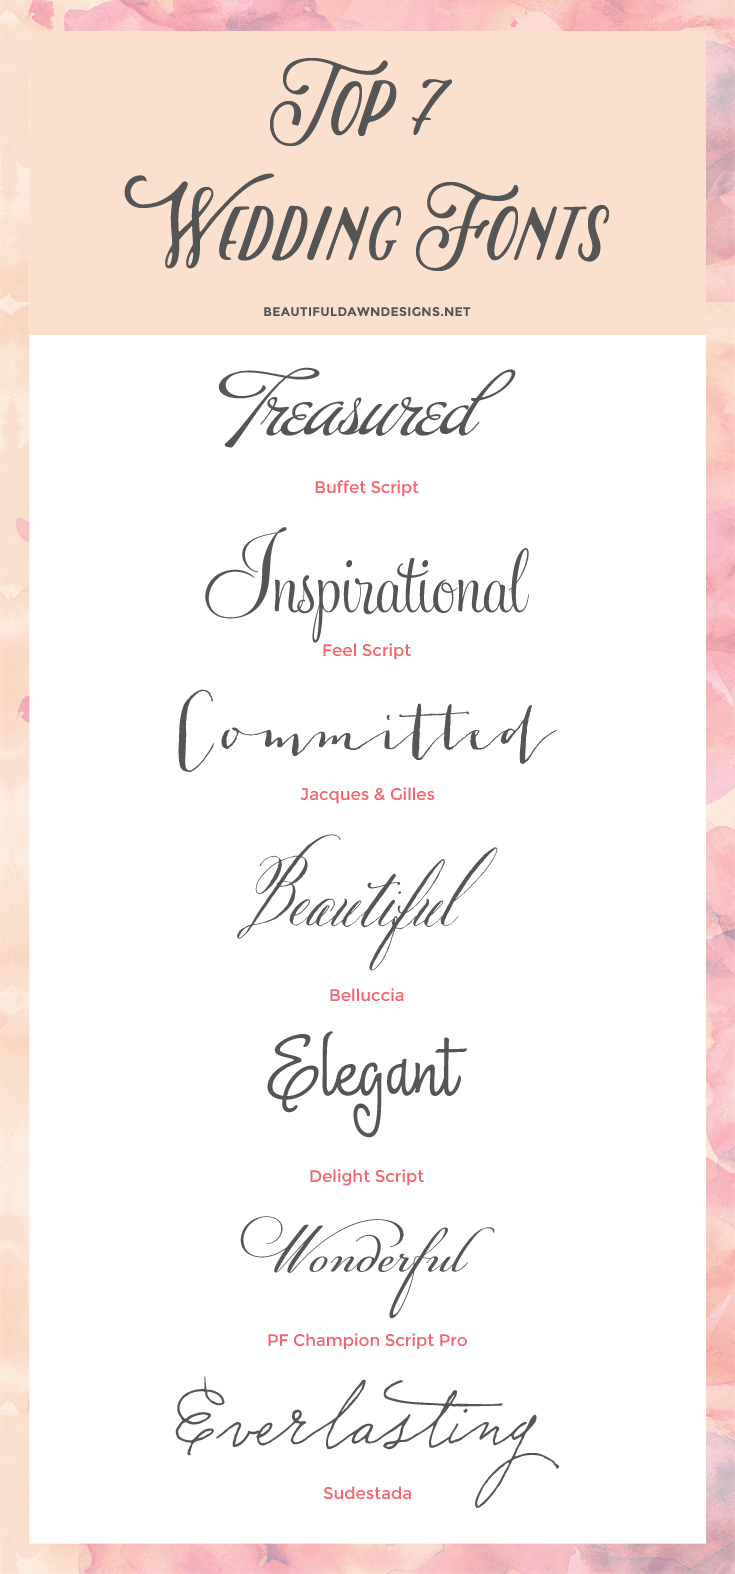 A roundup of fonts for weddings.